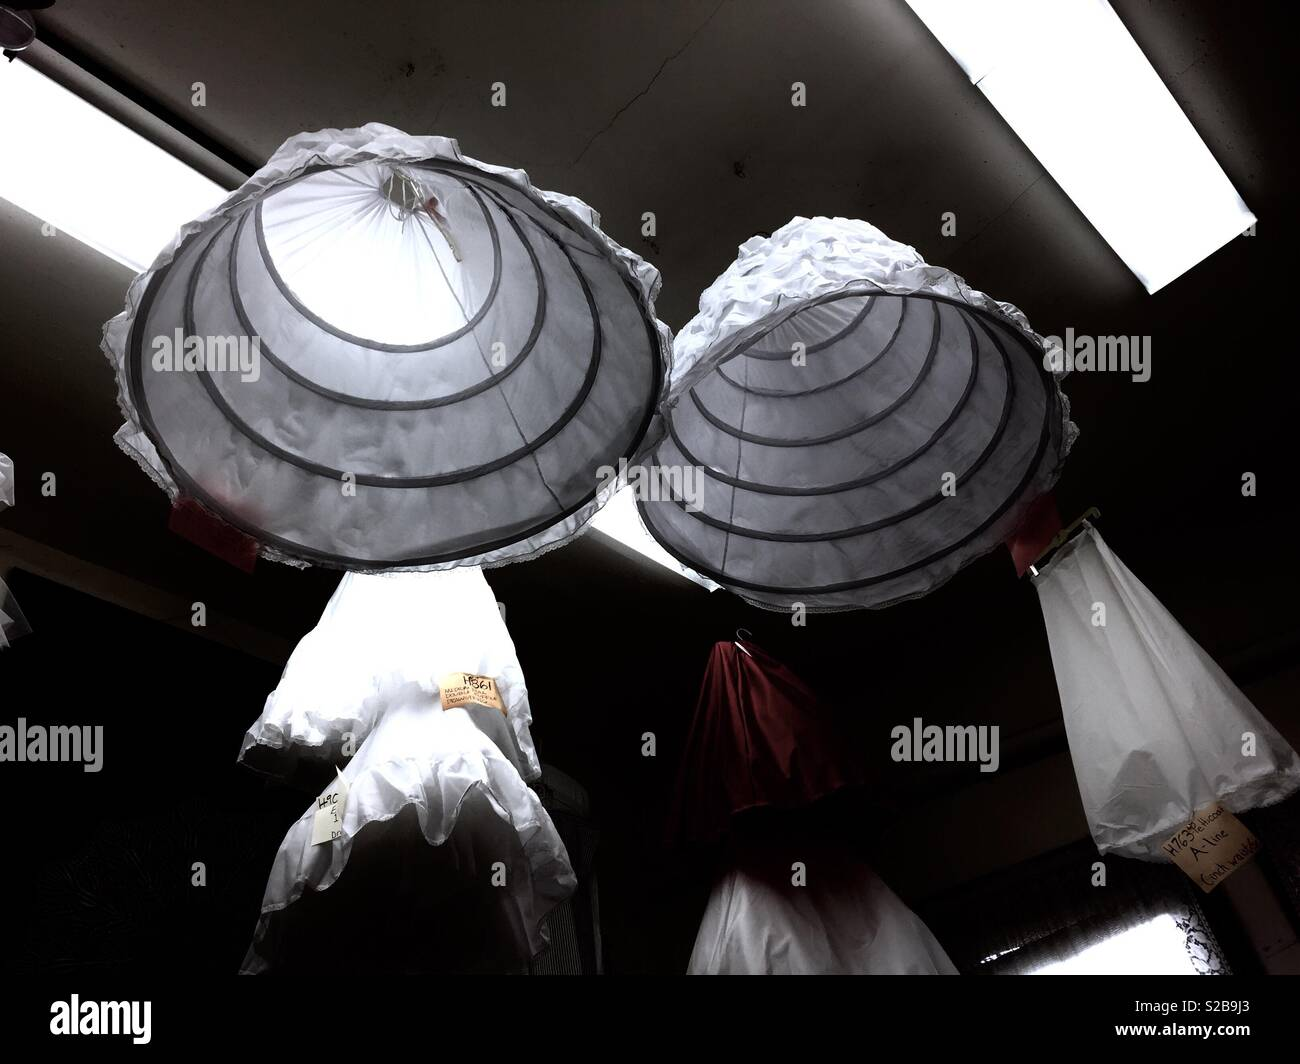 Hoop skirts hanging from the ceiling. - Stock Image